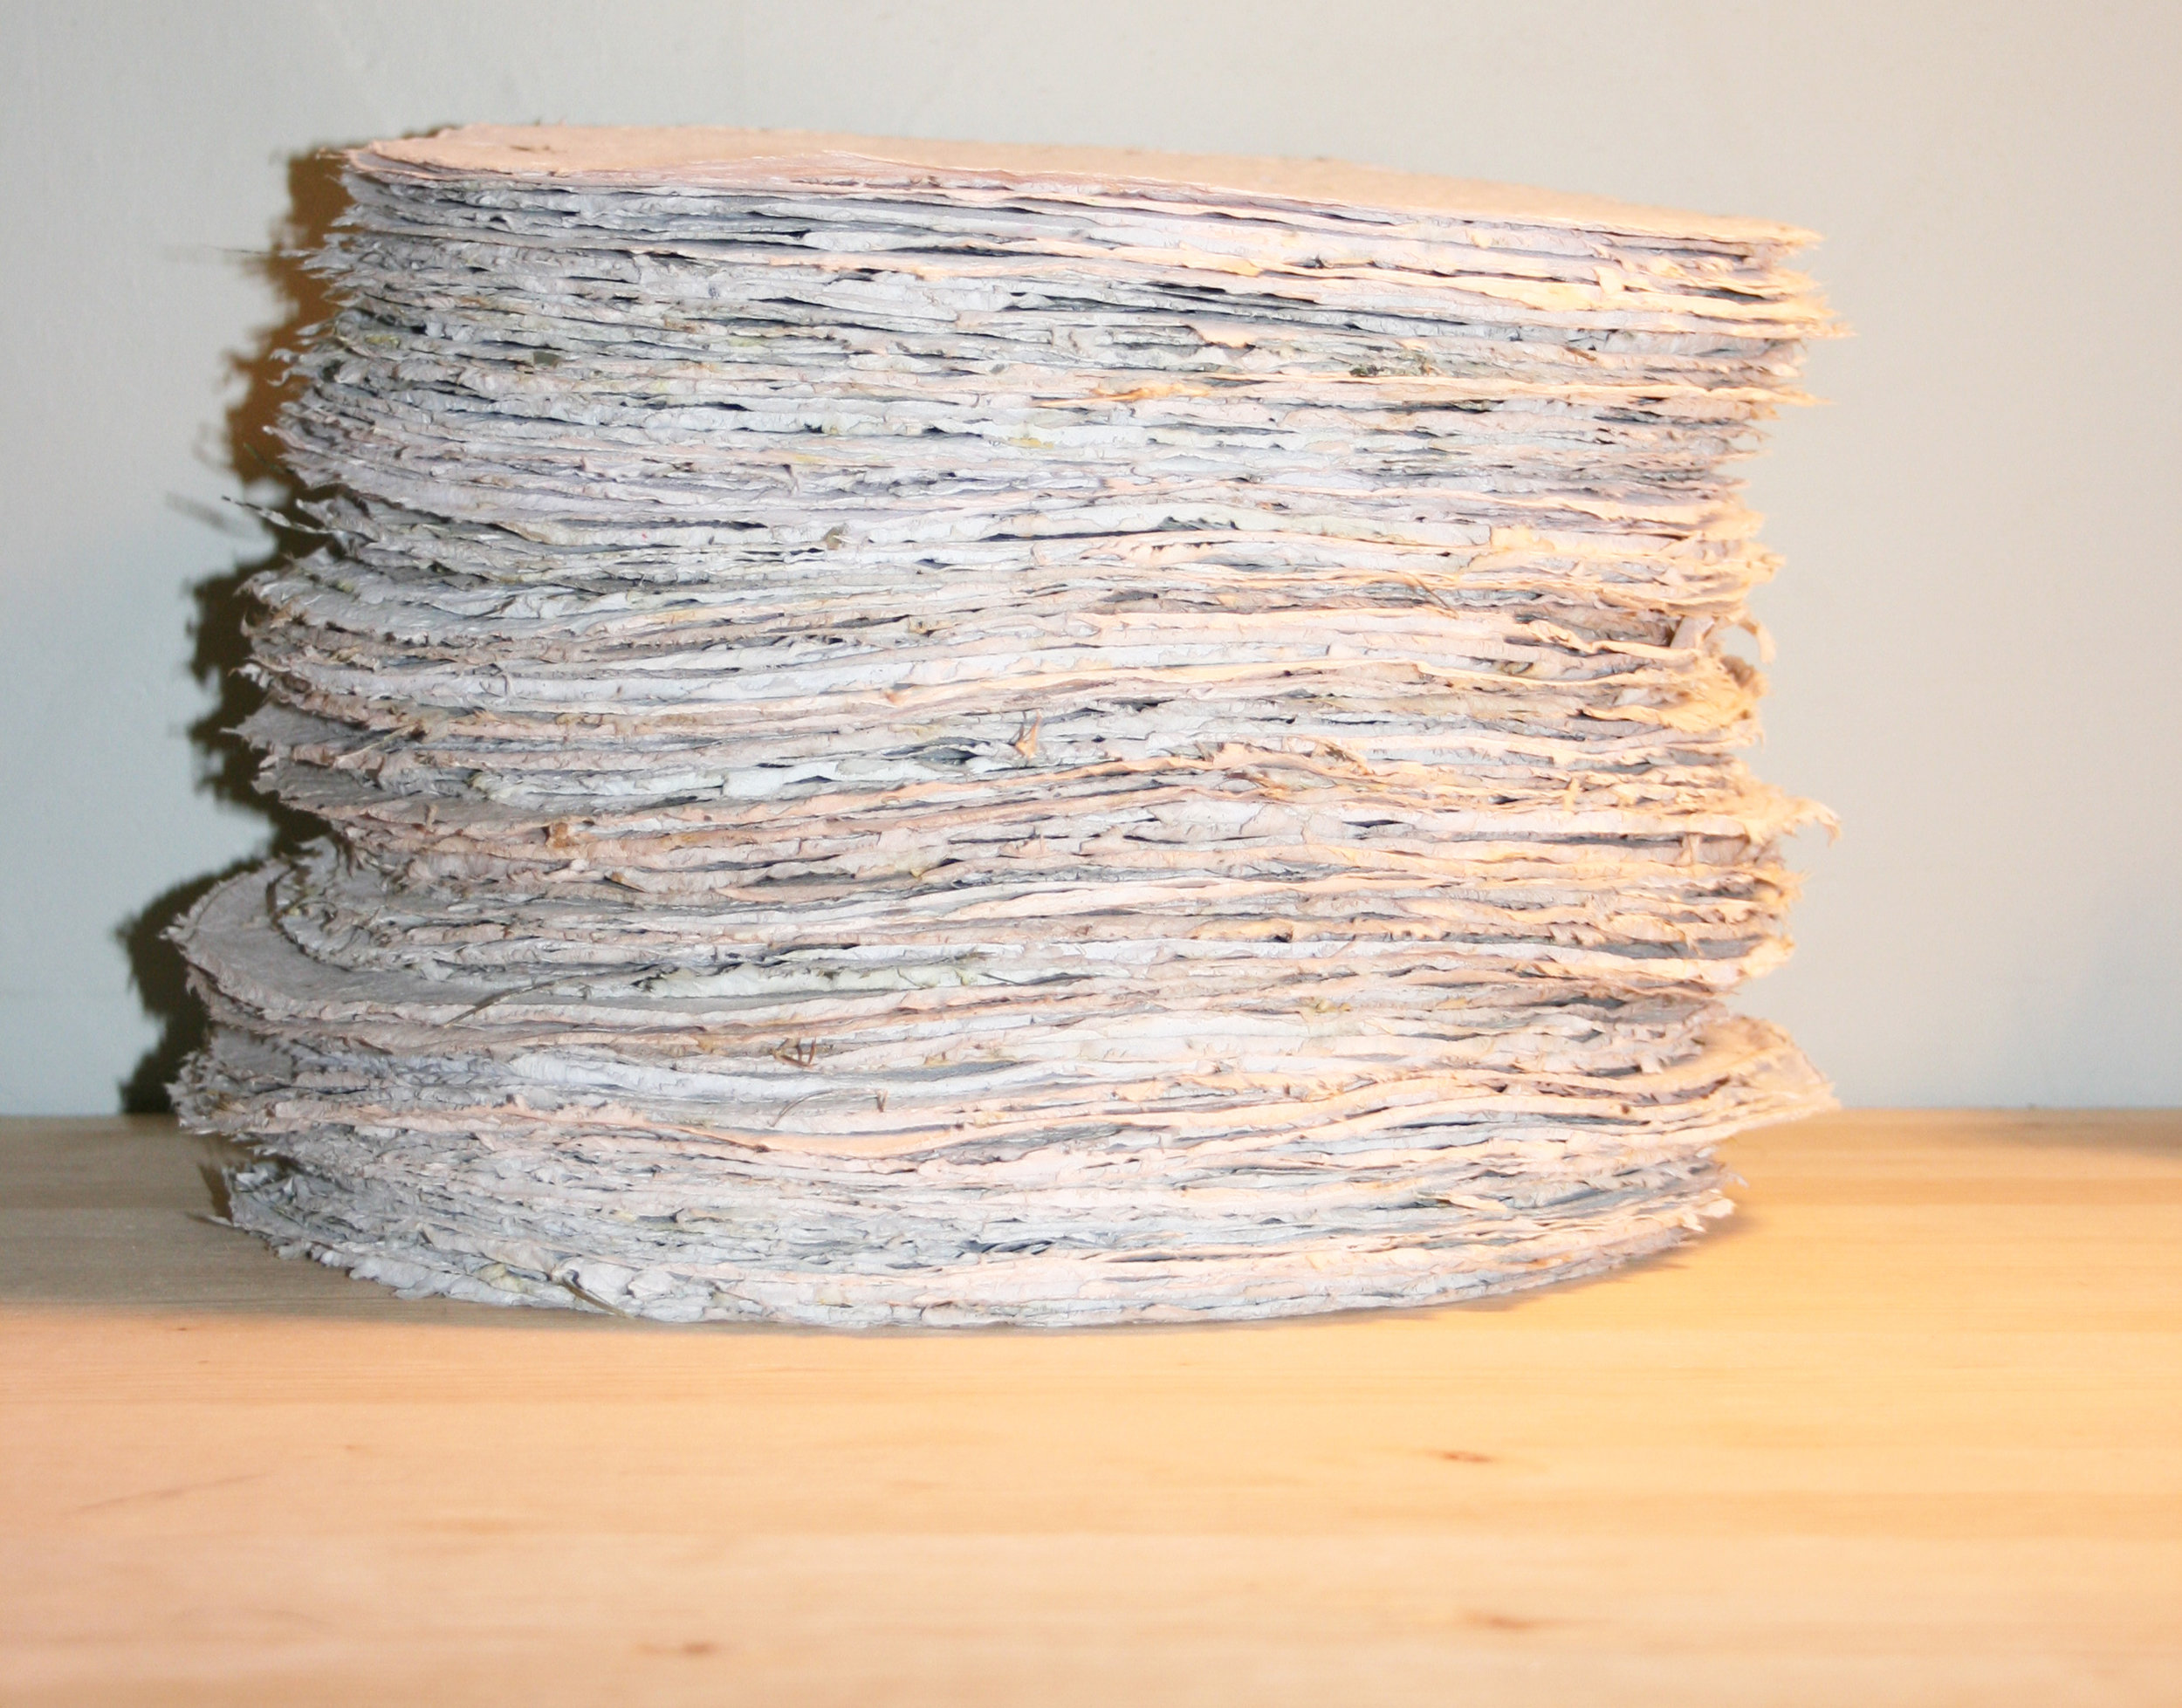 The finished paper all piled up ready to be delivered to the gallery.